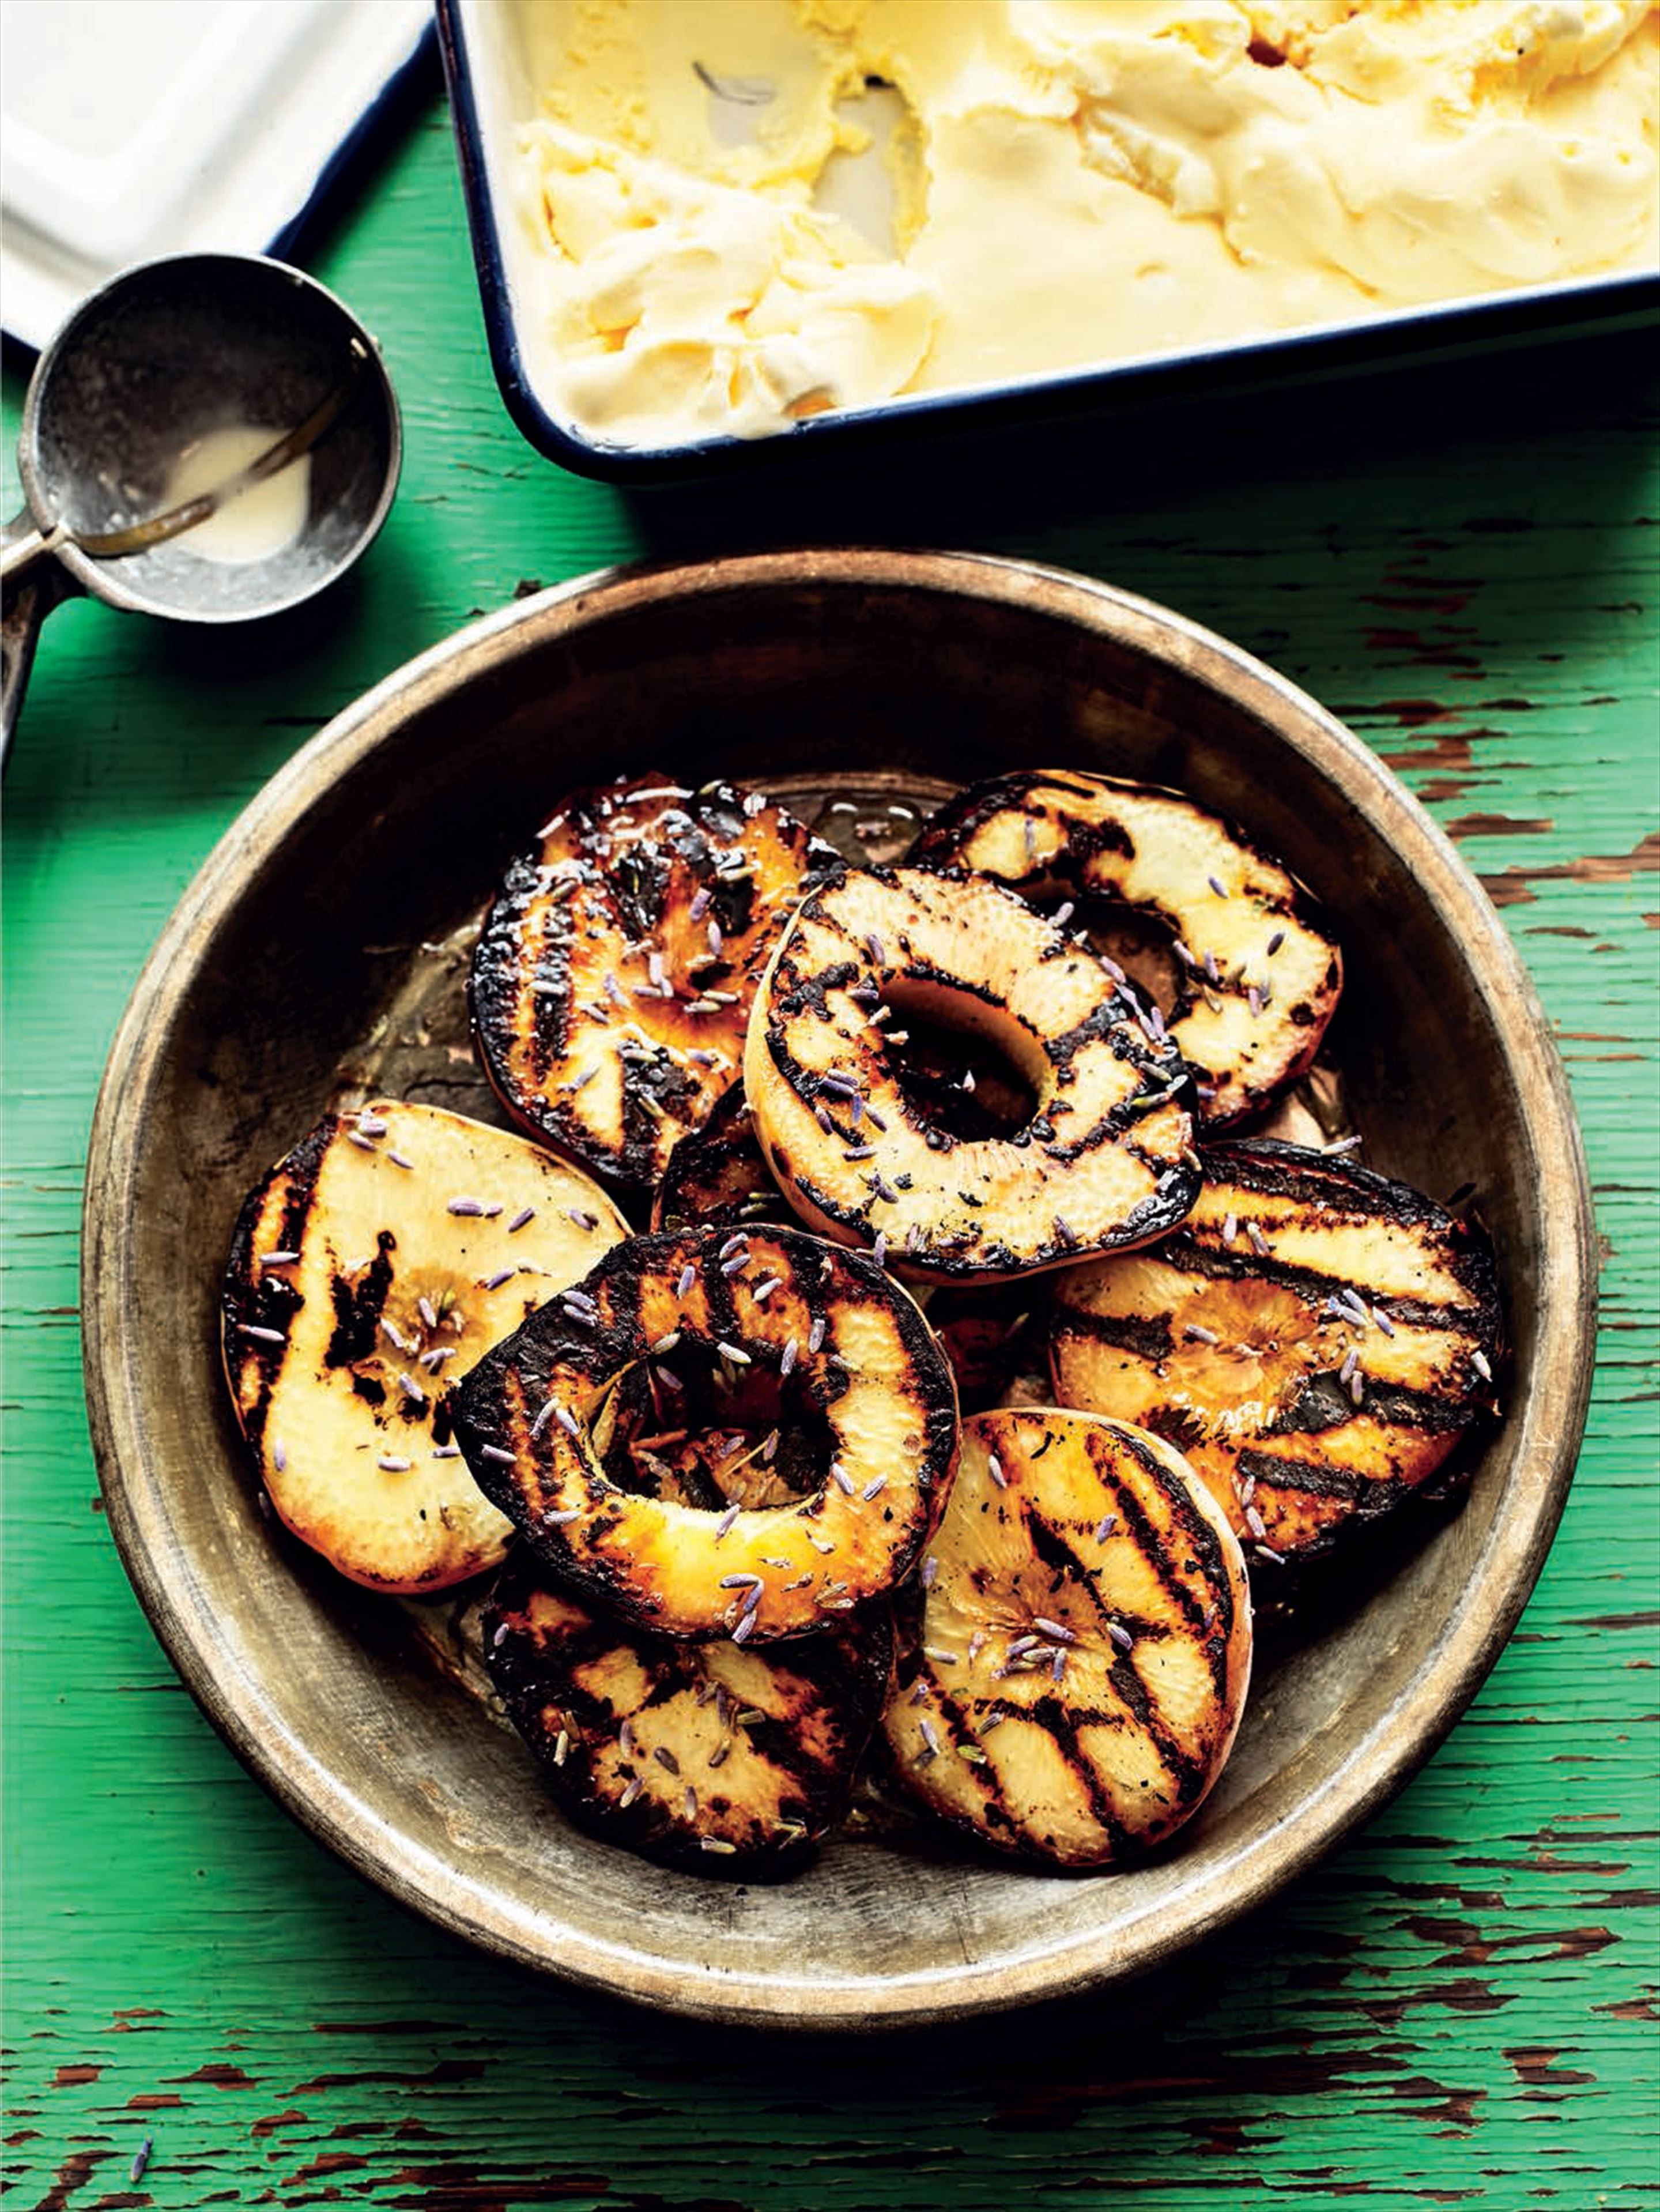 Charcoal-grilled peaches with lavender honey and mascarpone ice cream